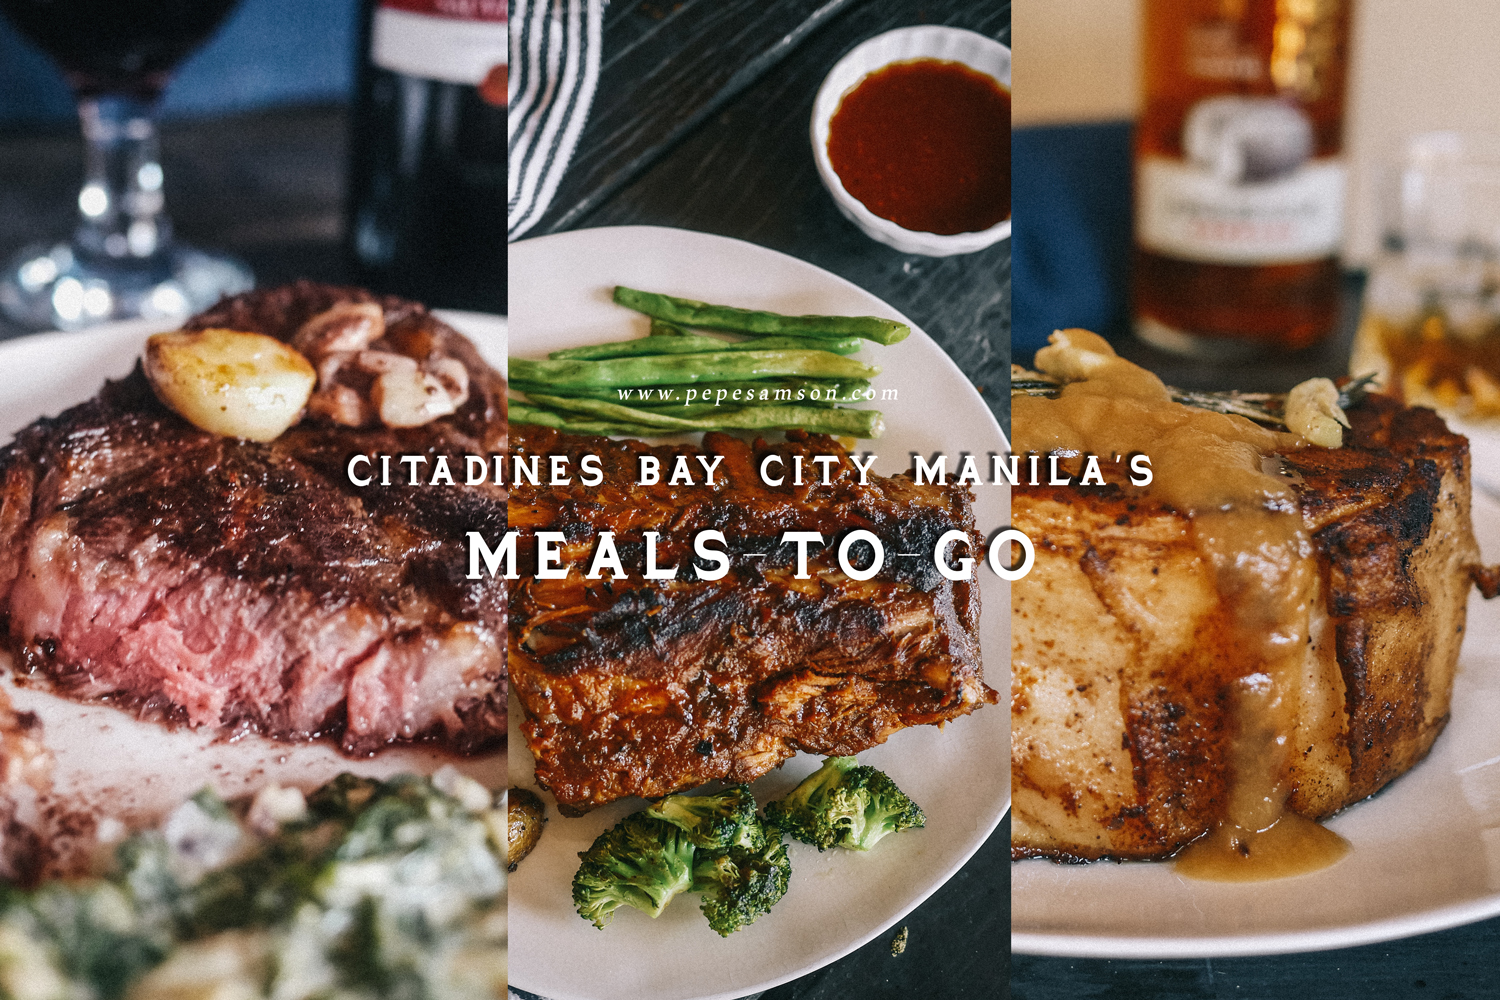 Citadines Bay City Manila's Meals-To-Go